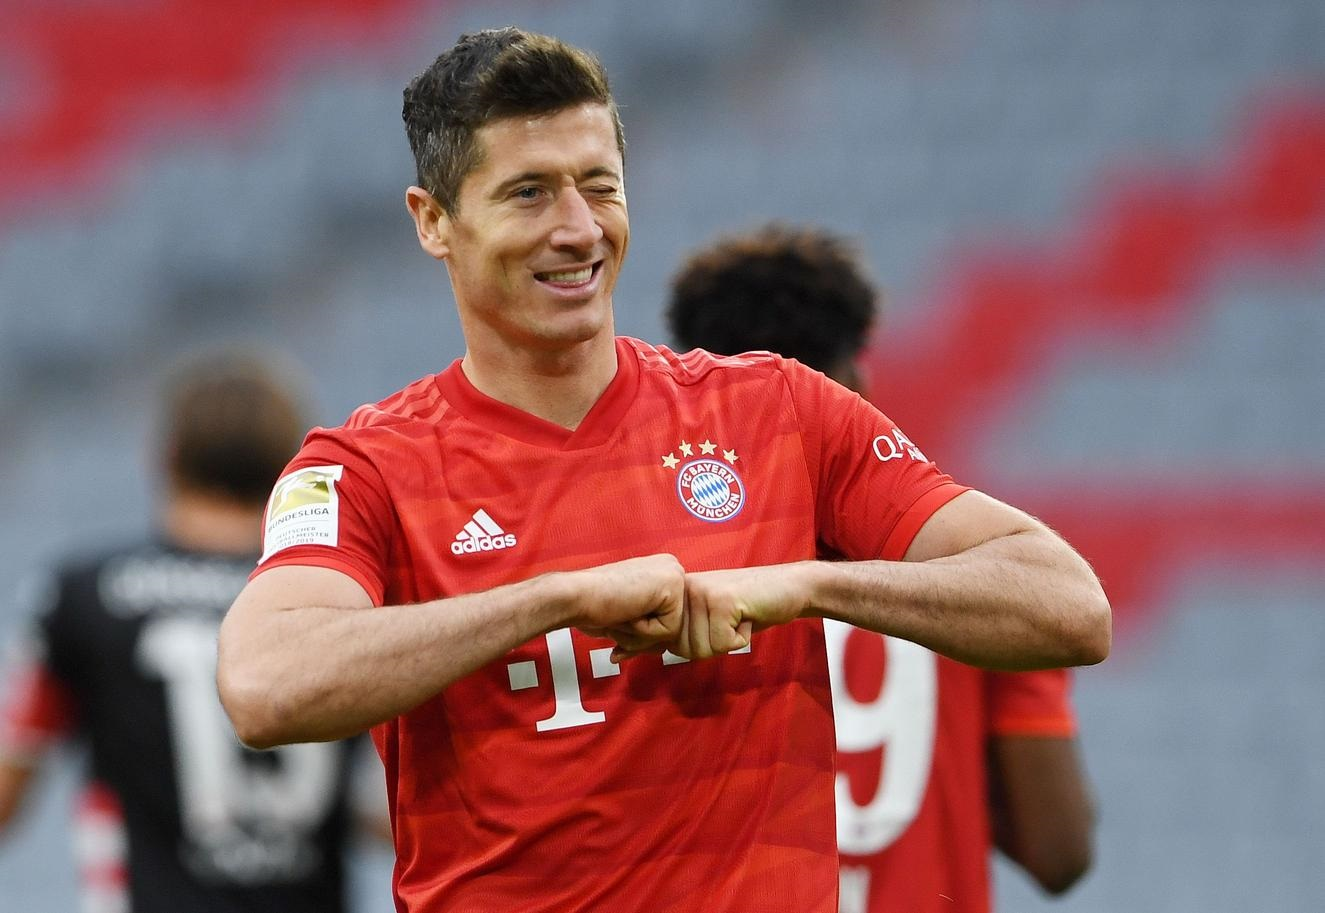 Five-star Bayern thrash Fortuna to close in on league title